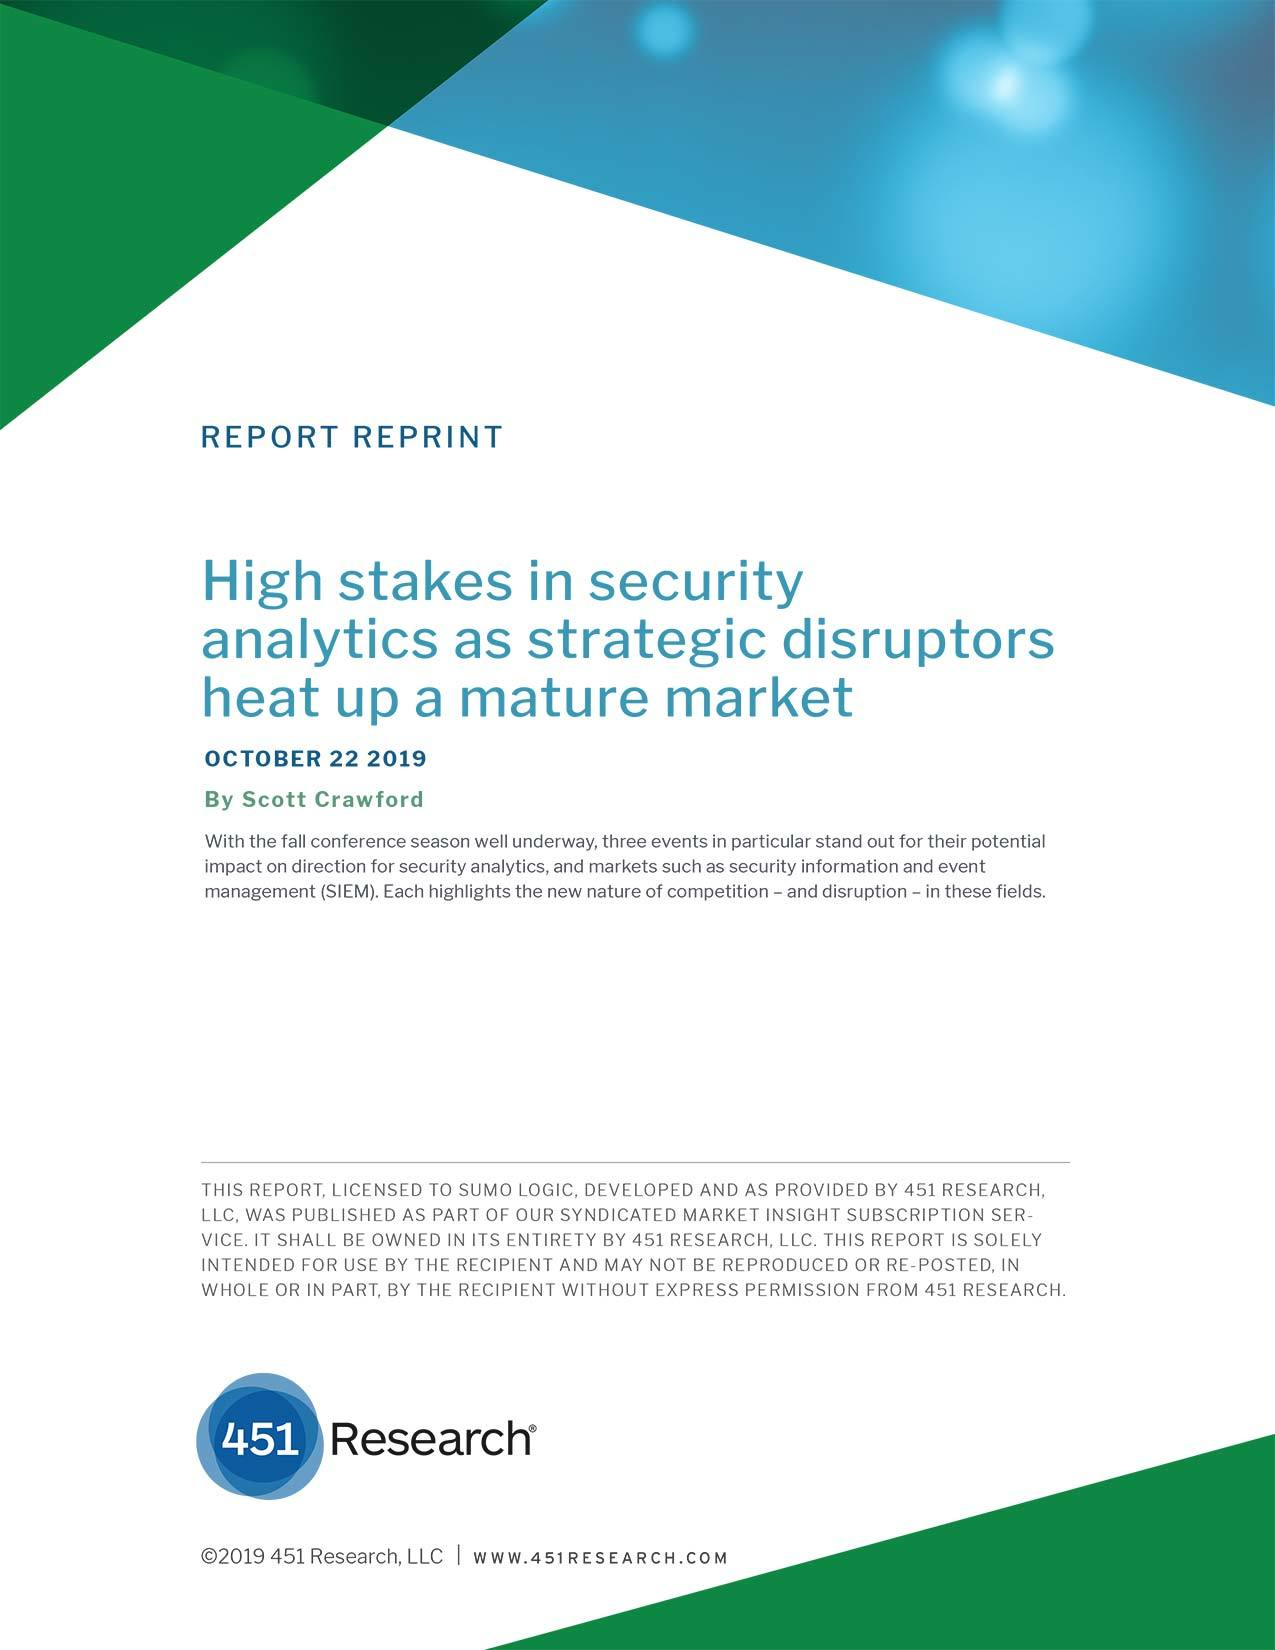 High Stakes in Security Analytics as Strategic Disruptors Heat Up a Mature Market